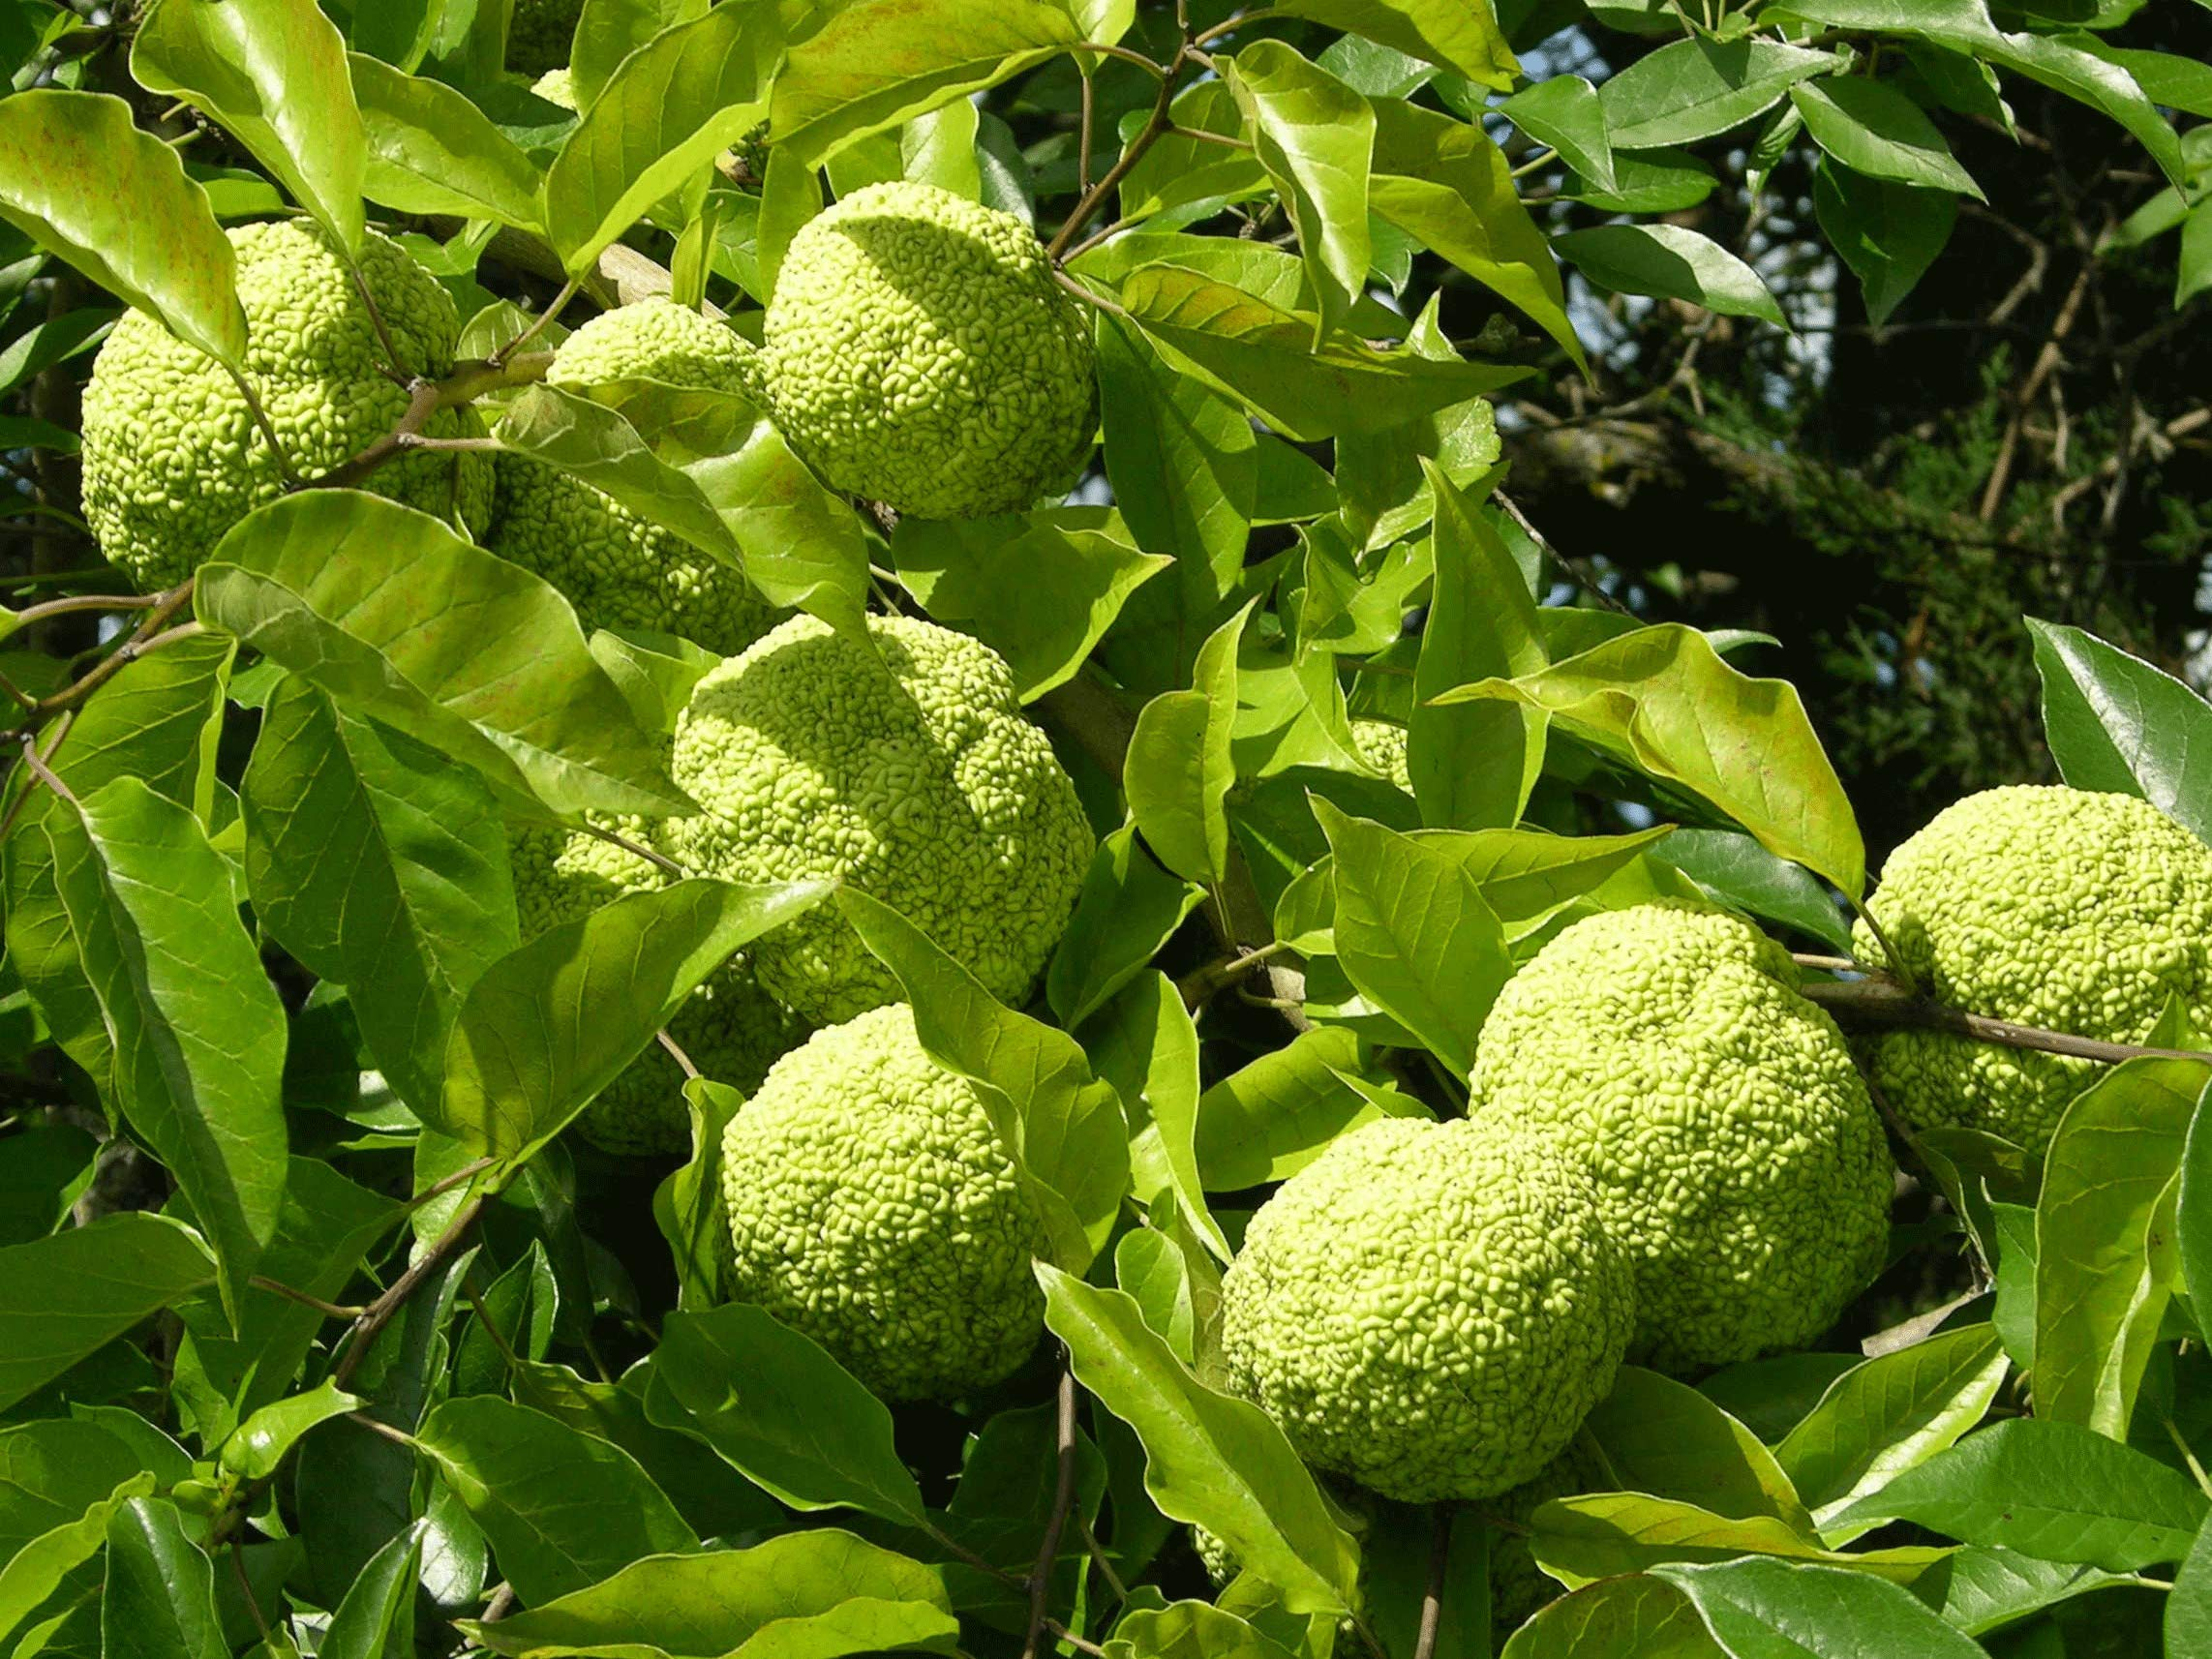 Osage Oranges Hedge Apples - 7 or More in Box. This is The Real Fruit from Iowa Trees by Moses WholeSale